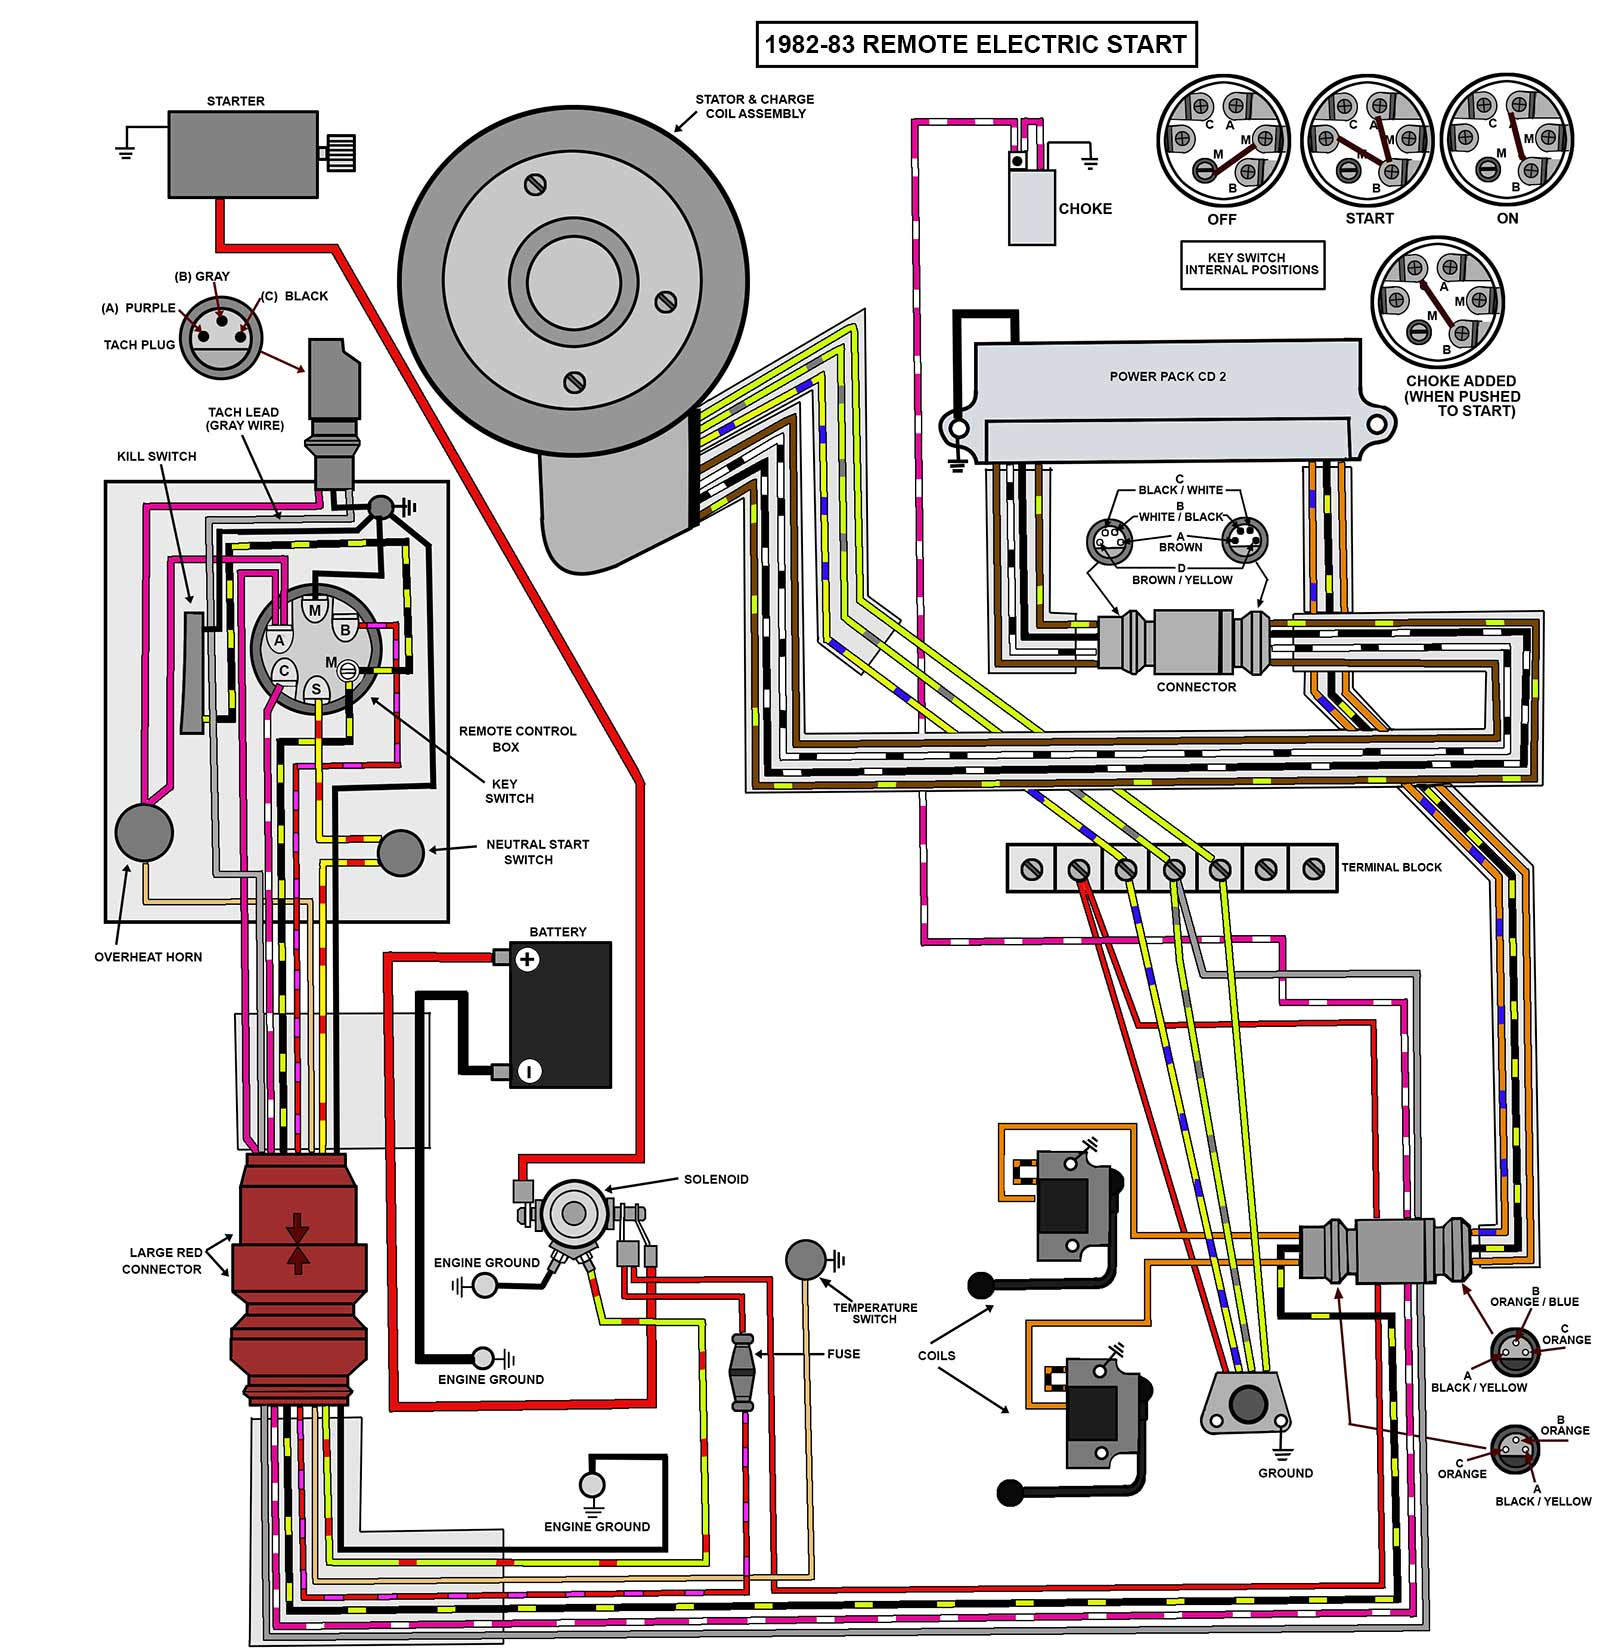 25_35_82 83_elec remote hp wiring diagram wiring harness diagram \u2022 wiring diagrams j mercury 25 hp wiring diagram at gsmx.co